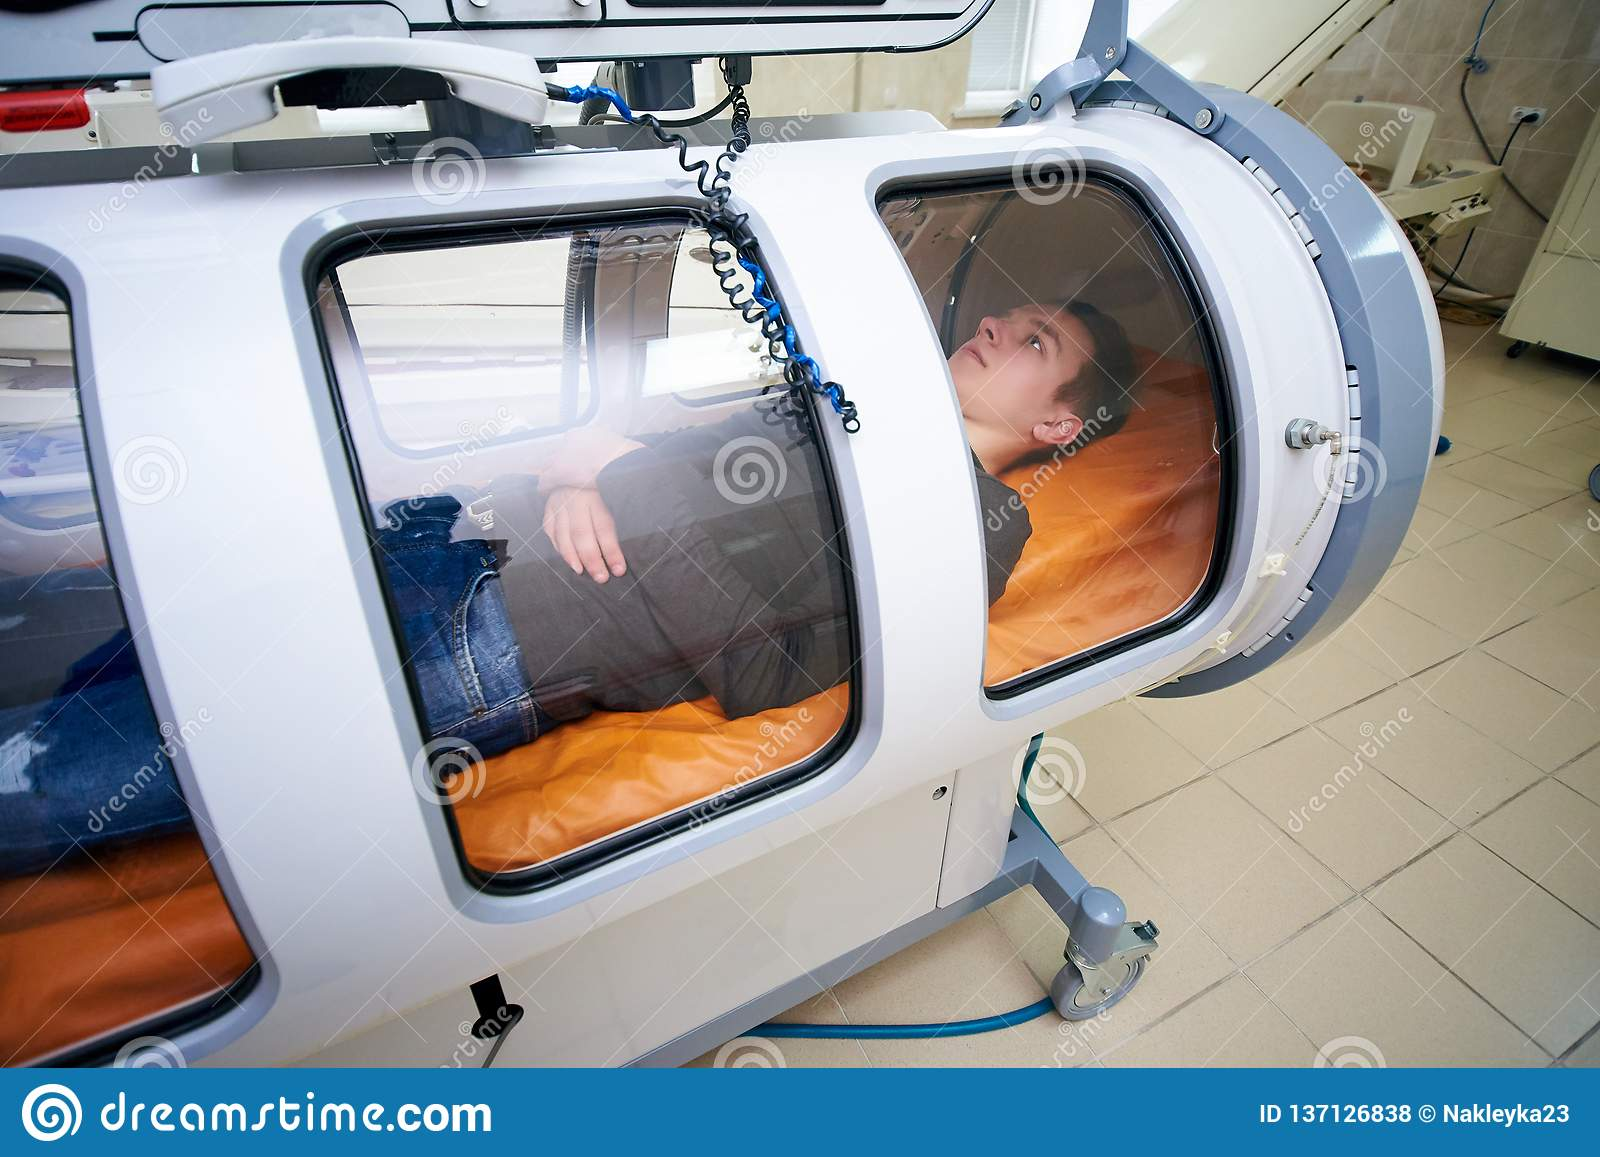 The guy in the black T-shirt lies in the hyperbaric chamber, oxygen therapy